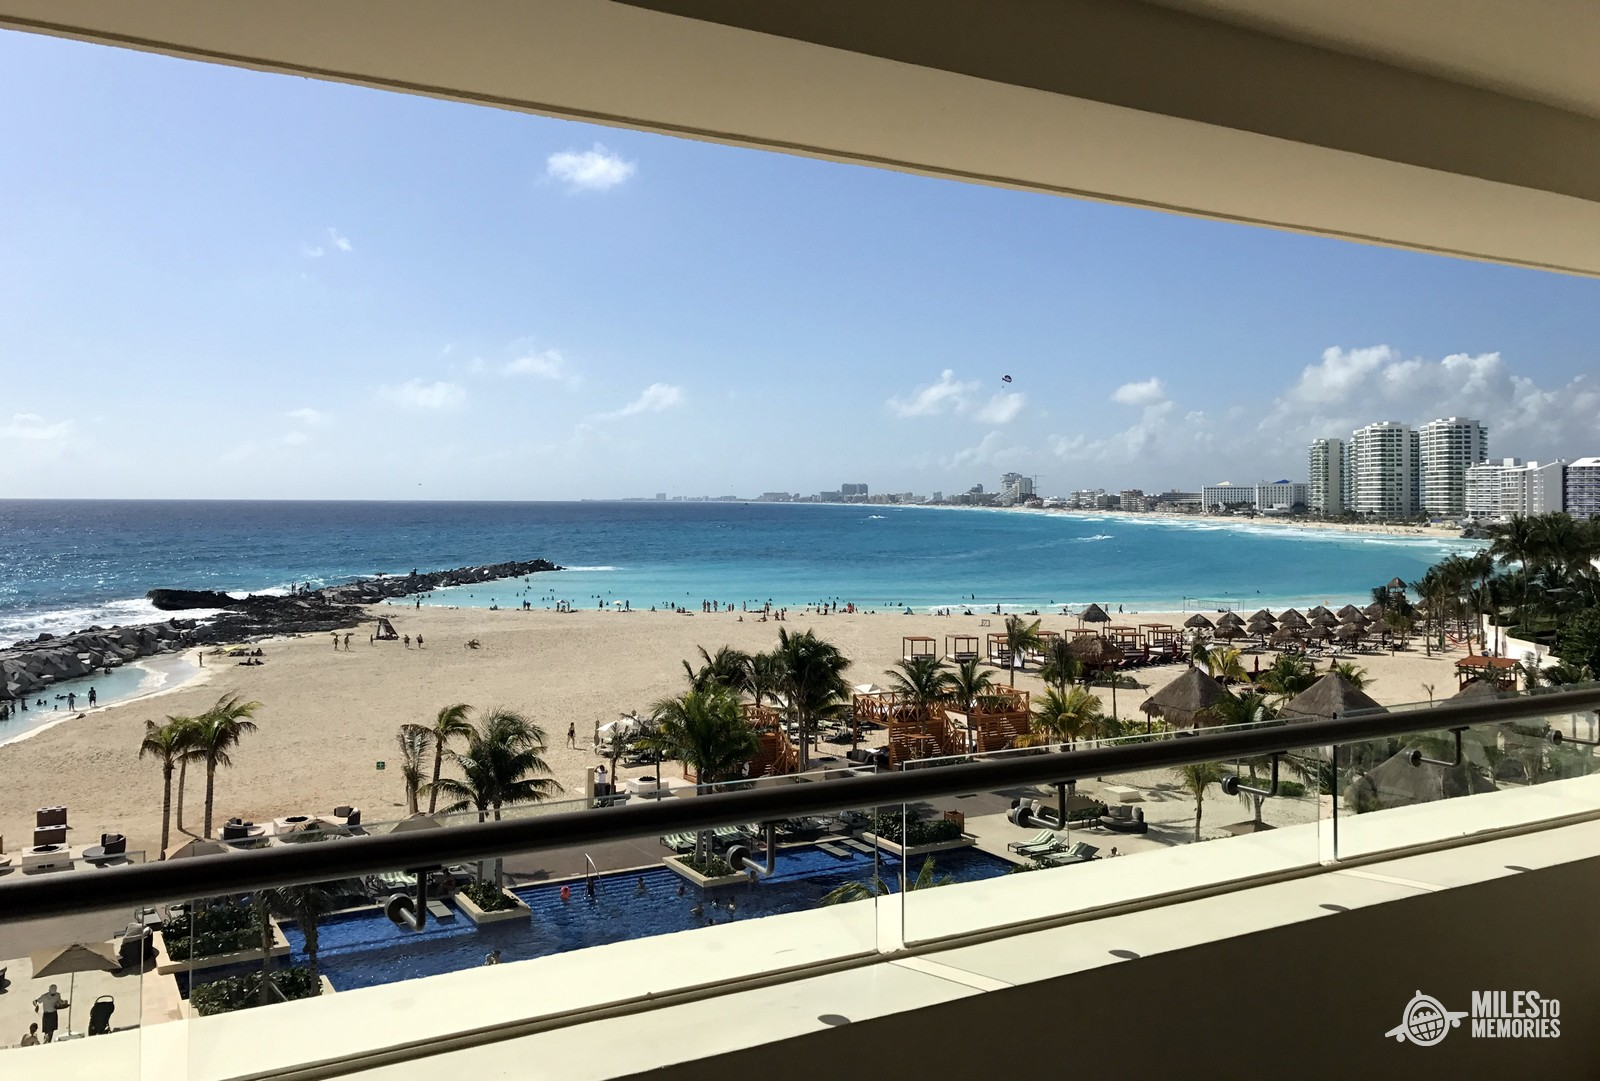 Camino Real Resort Cancun Hyatt Ziva Cancun Review A Worthy Family Vacation Destination